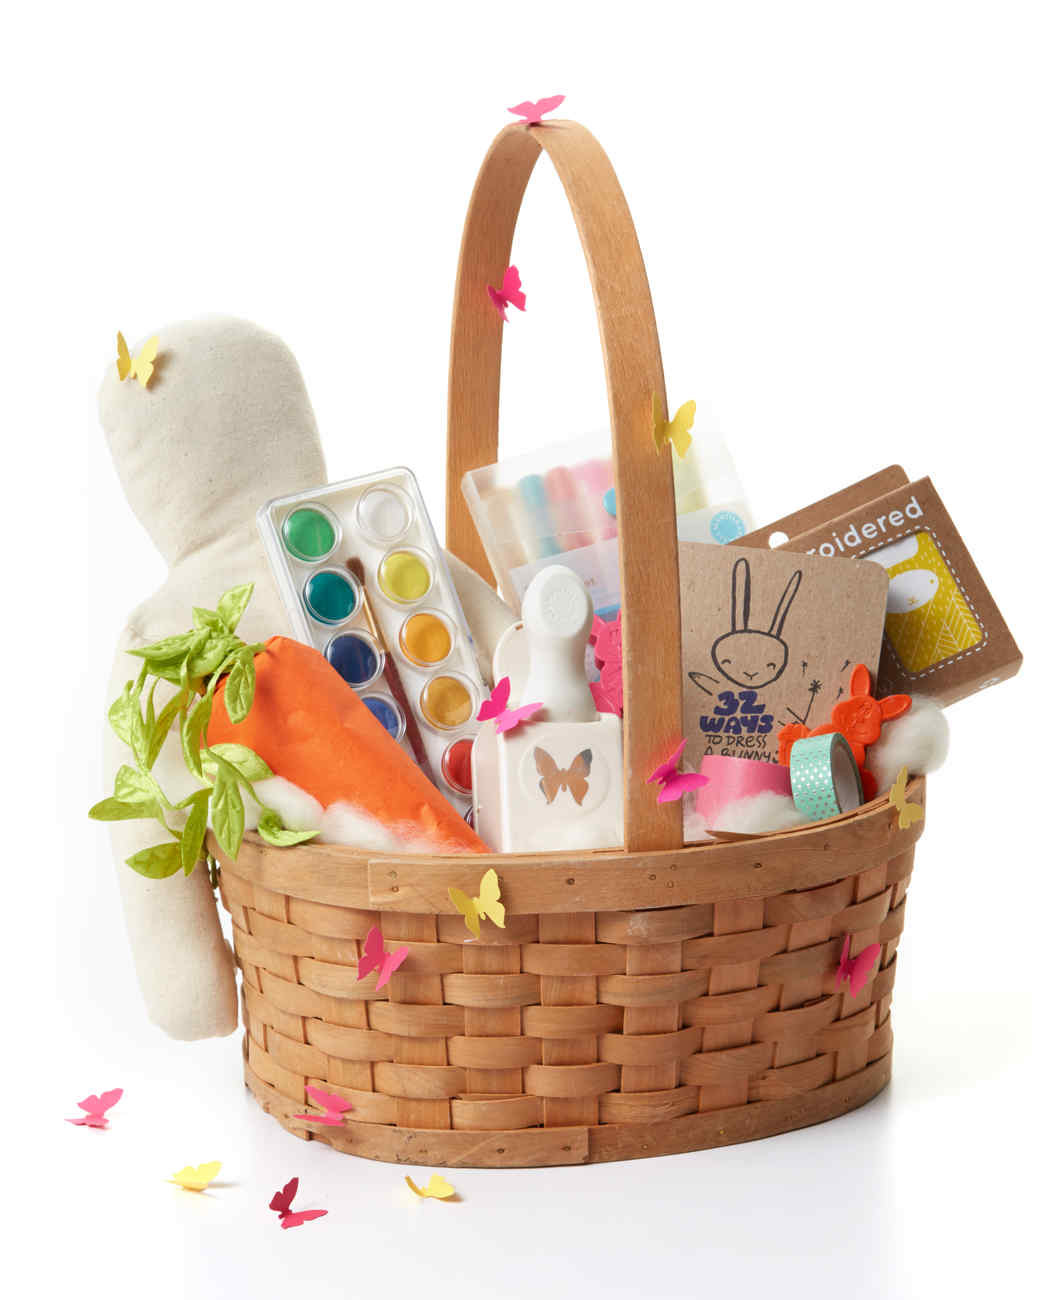 Easter Gift Ideas For Girlfriend  31 Awesome Easter Basket Ideas